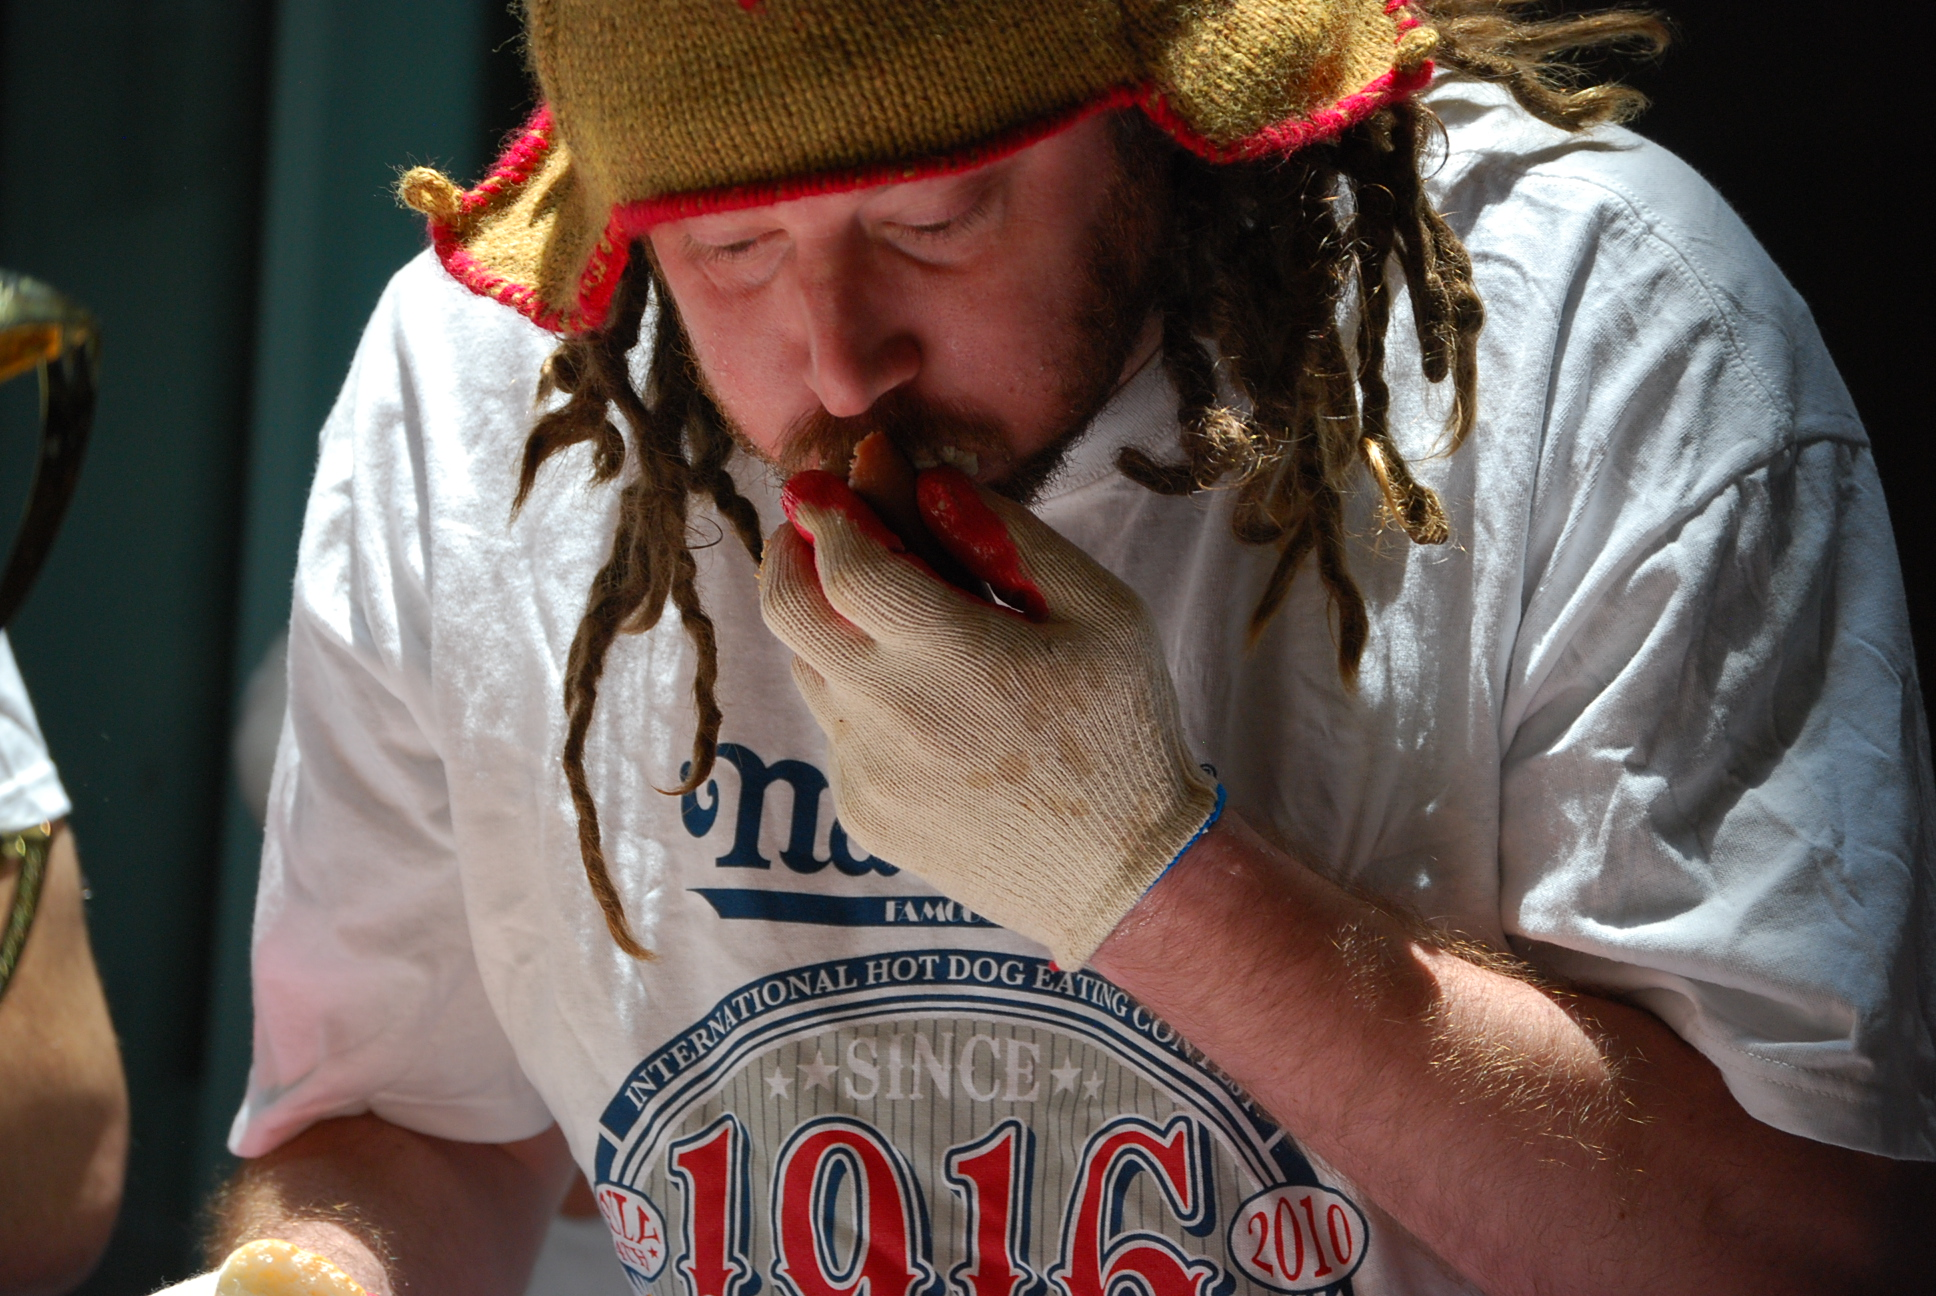 hot dog eating contestant